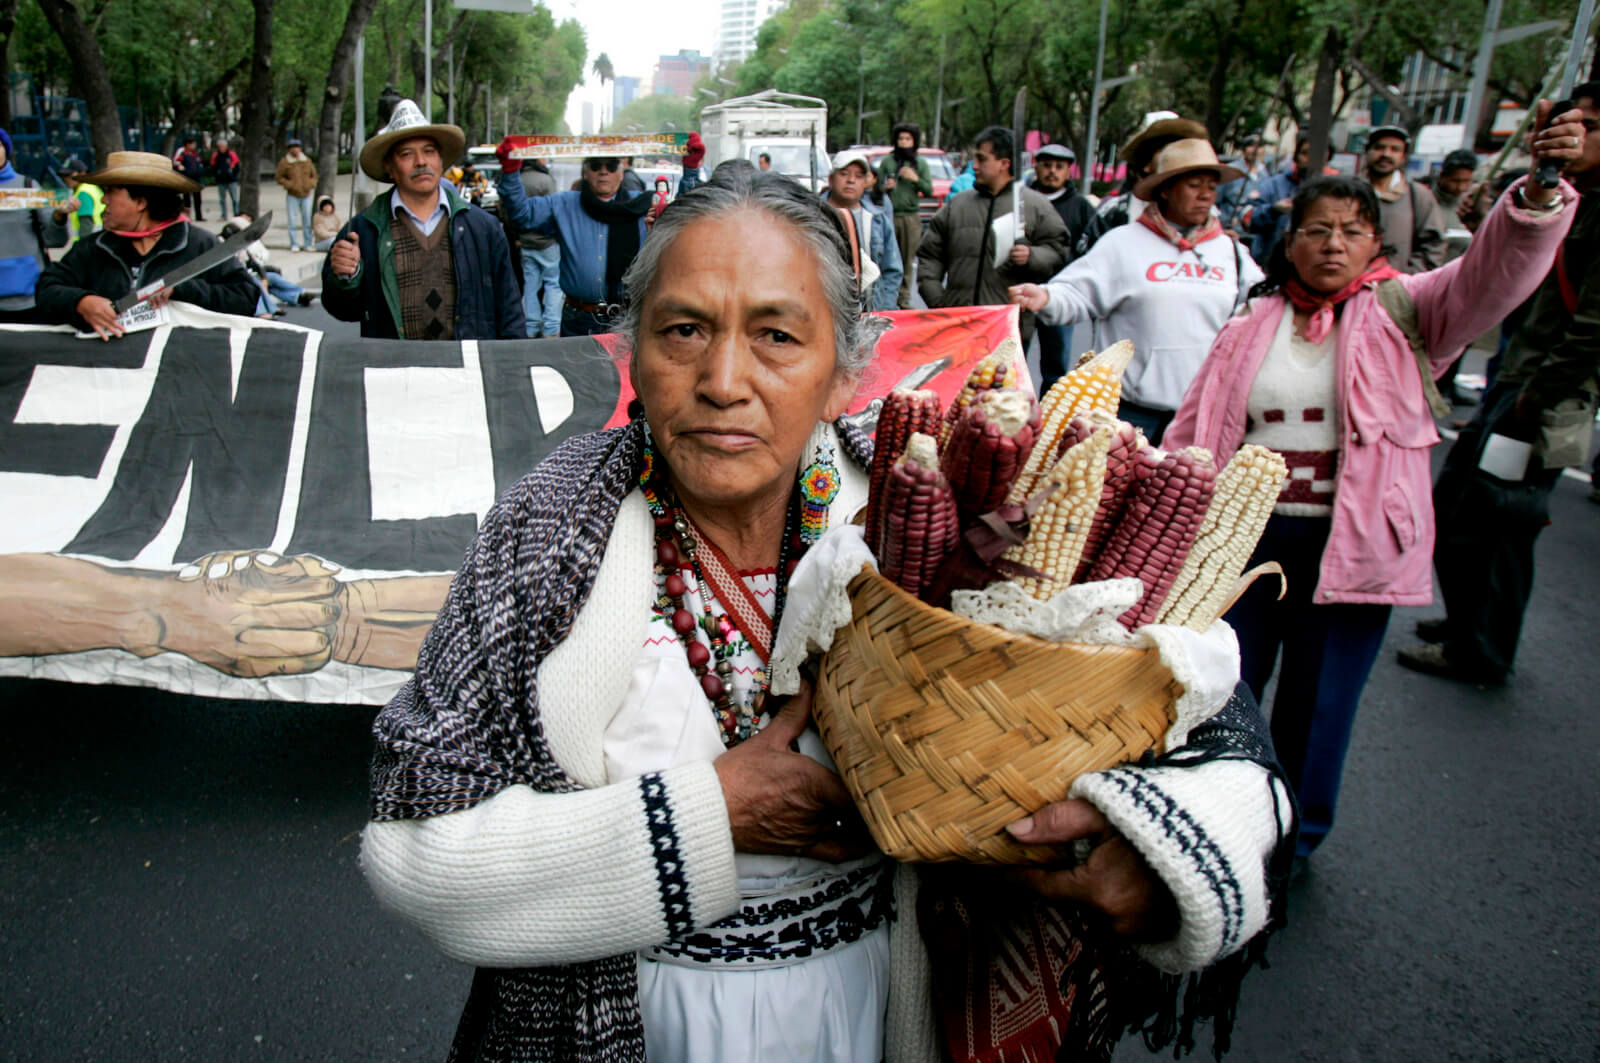 Mexican farmers protest the end of import protections under NAFTA for corn and bean crops in Mexico City, Jan. 2, 2008. Eduardo Verdugo | AP